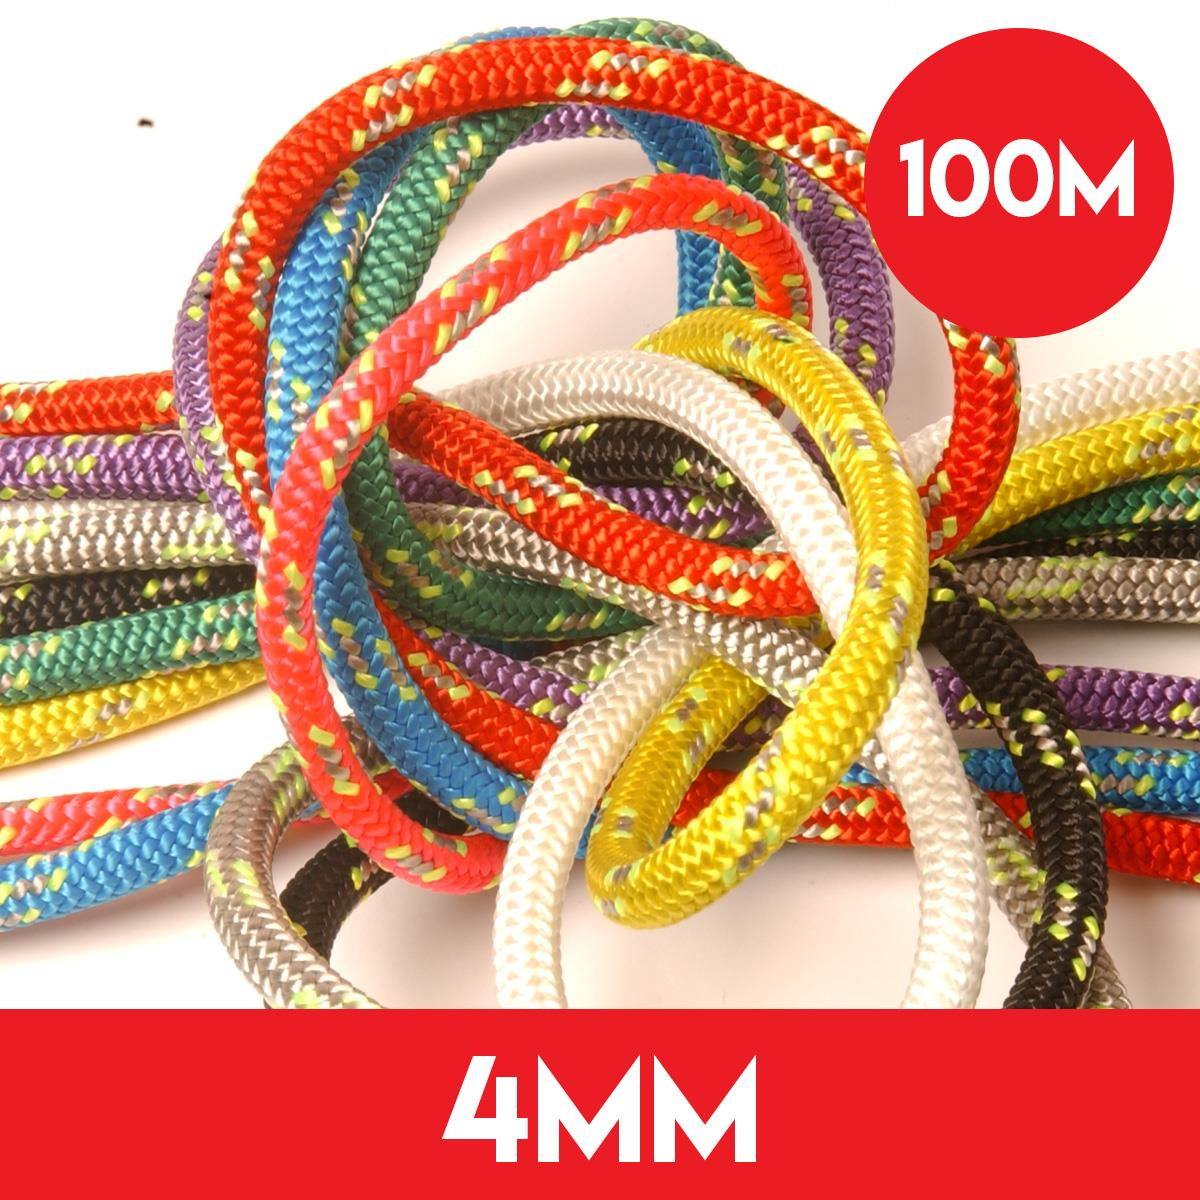 100m Reel of 4mm Kingfisher Evolution Race Rope